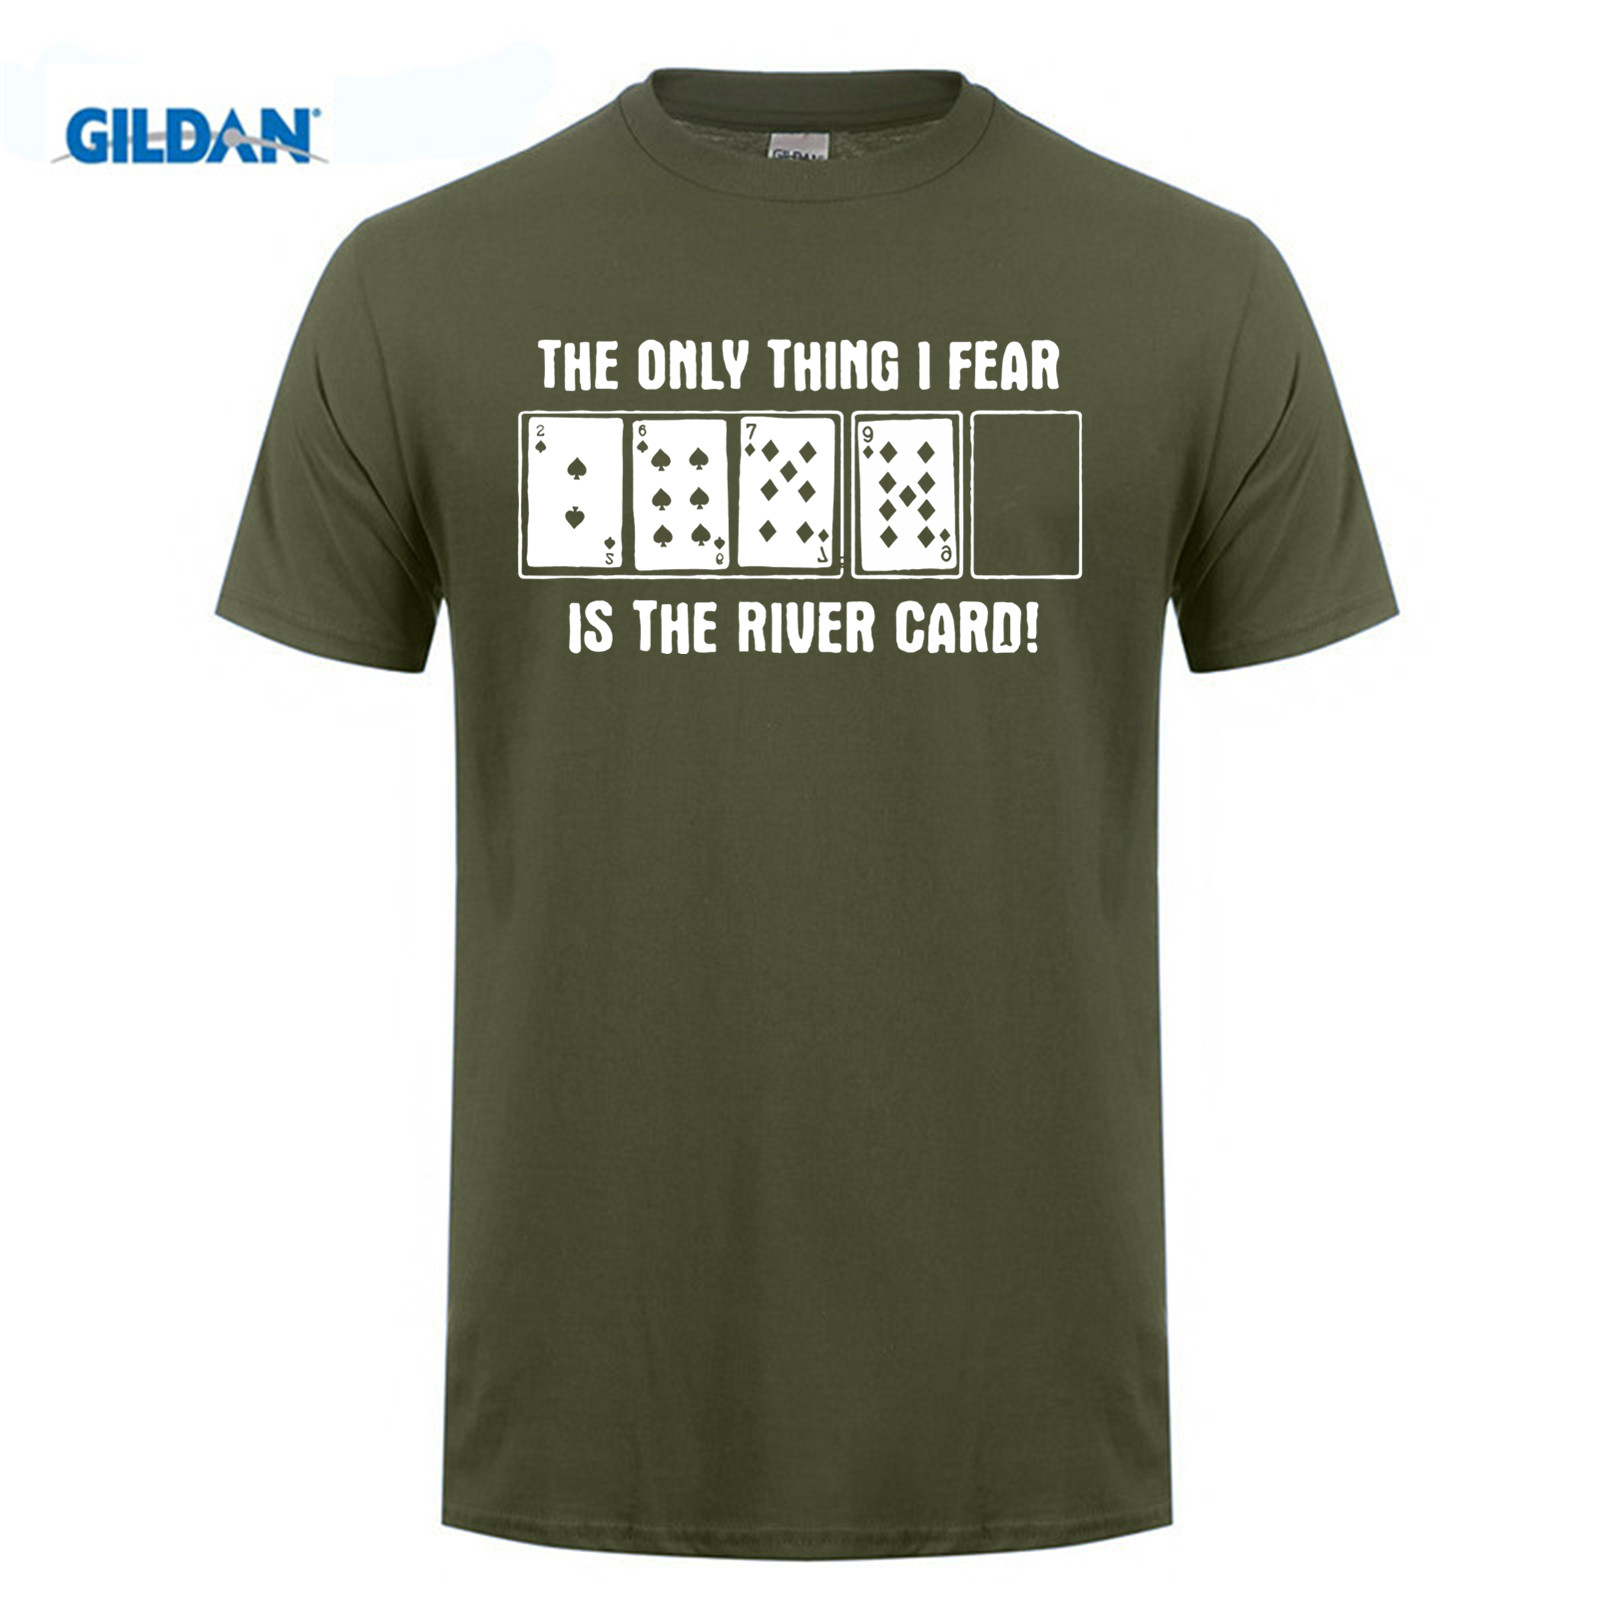 GILDAN cotton printed O-neck T-shirt The only thing I fear is the river card funny Poker T shirt